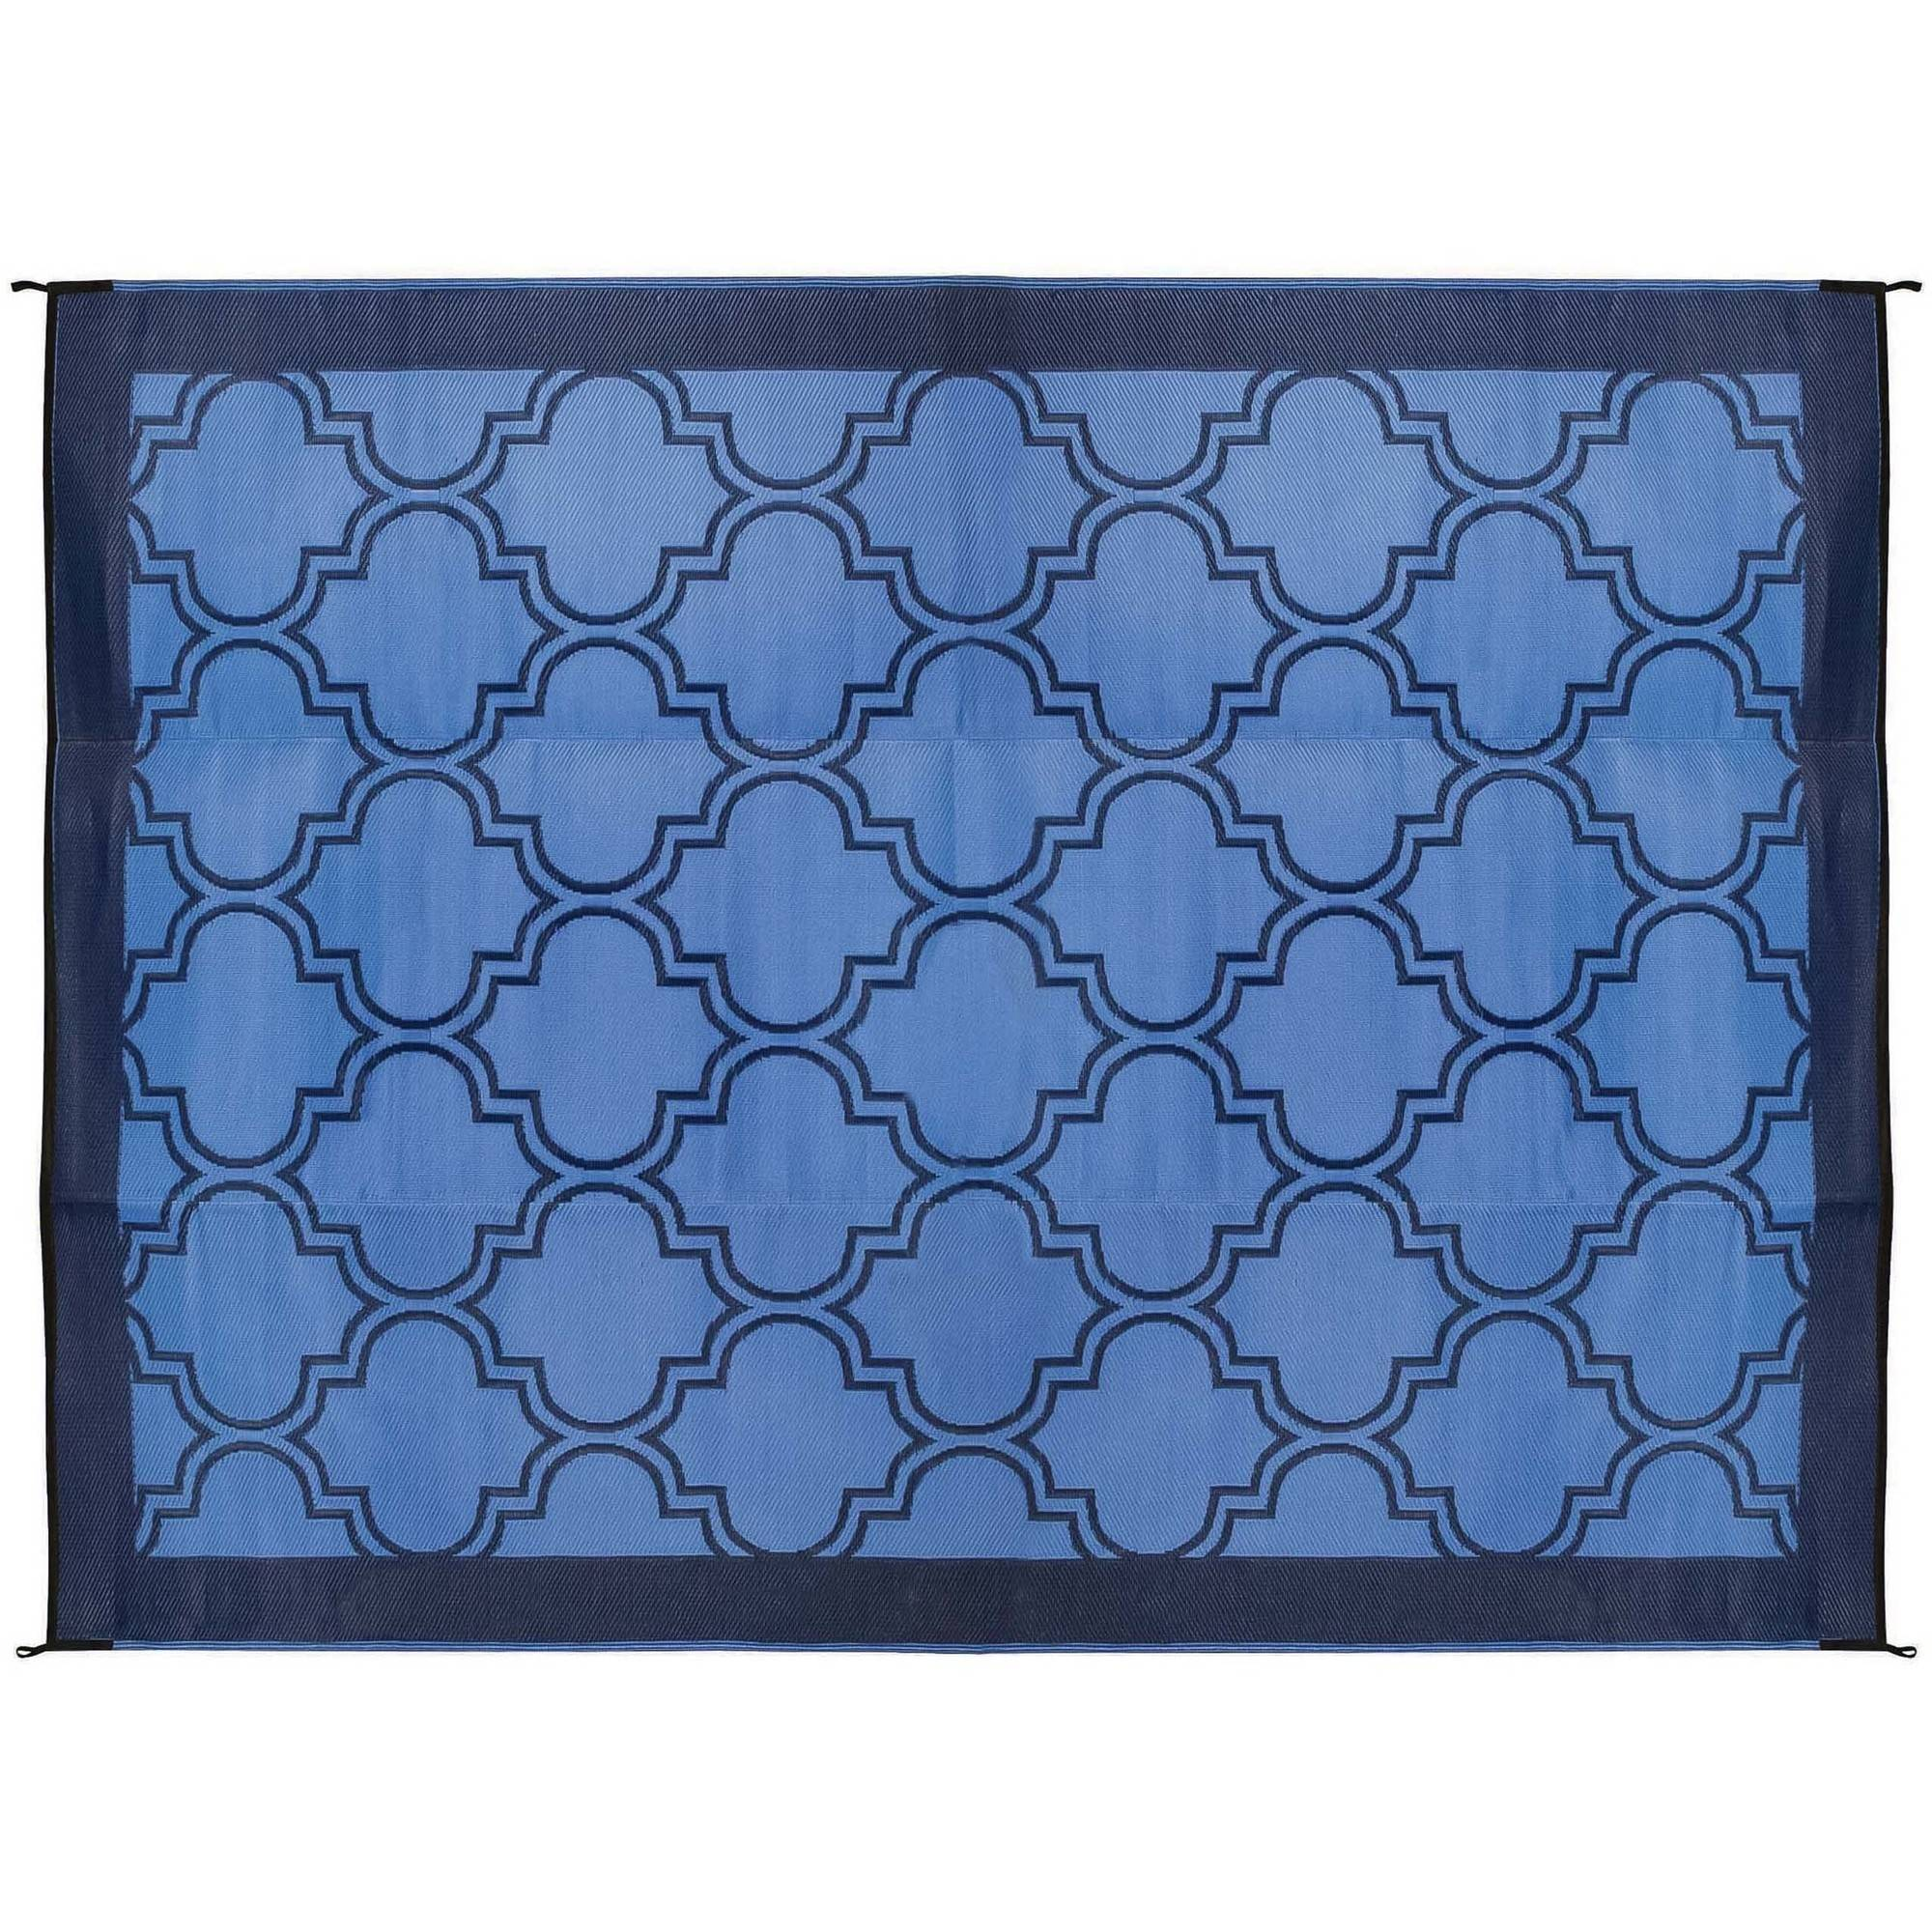 Camco 42856 Reversible Outdoor Mat, 9' x 12', Lattice Blue Design